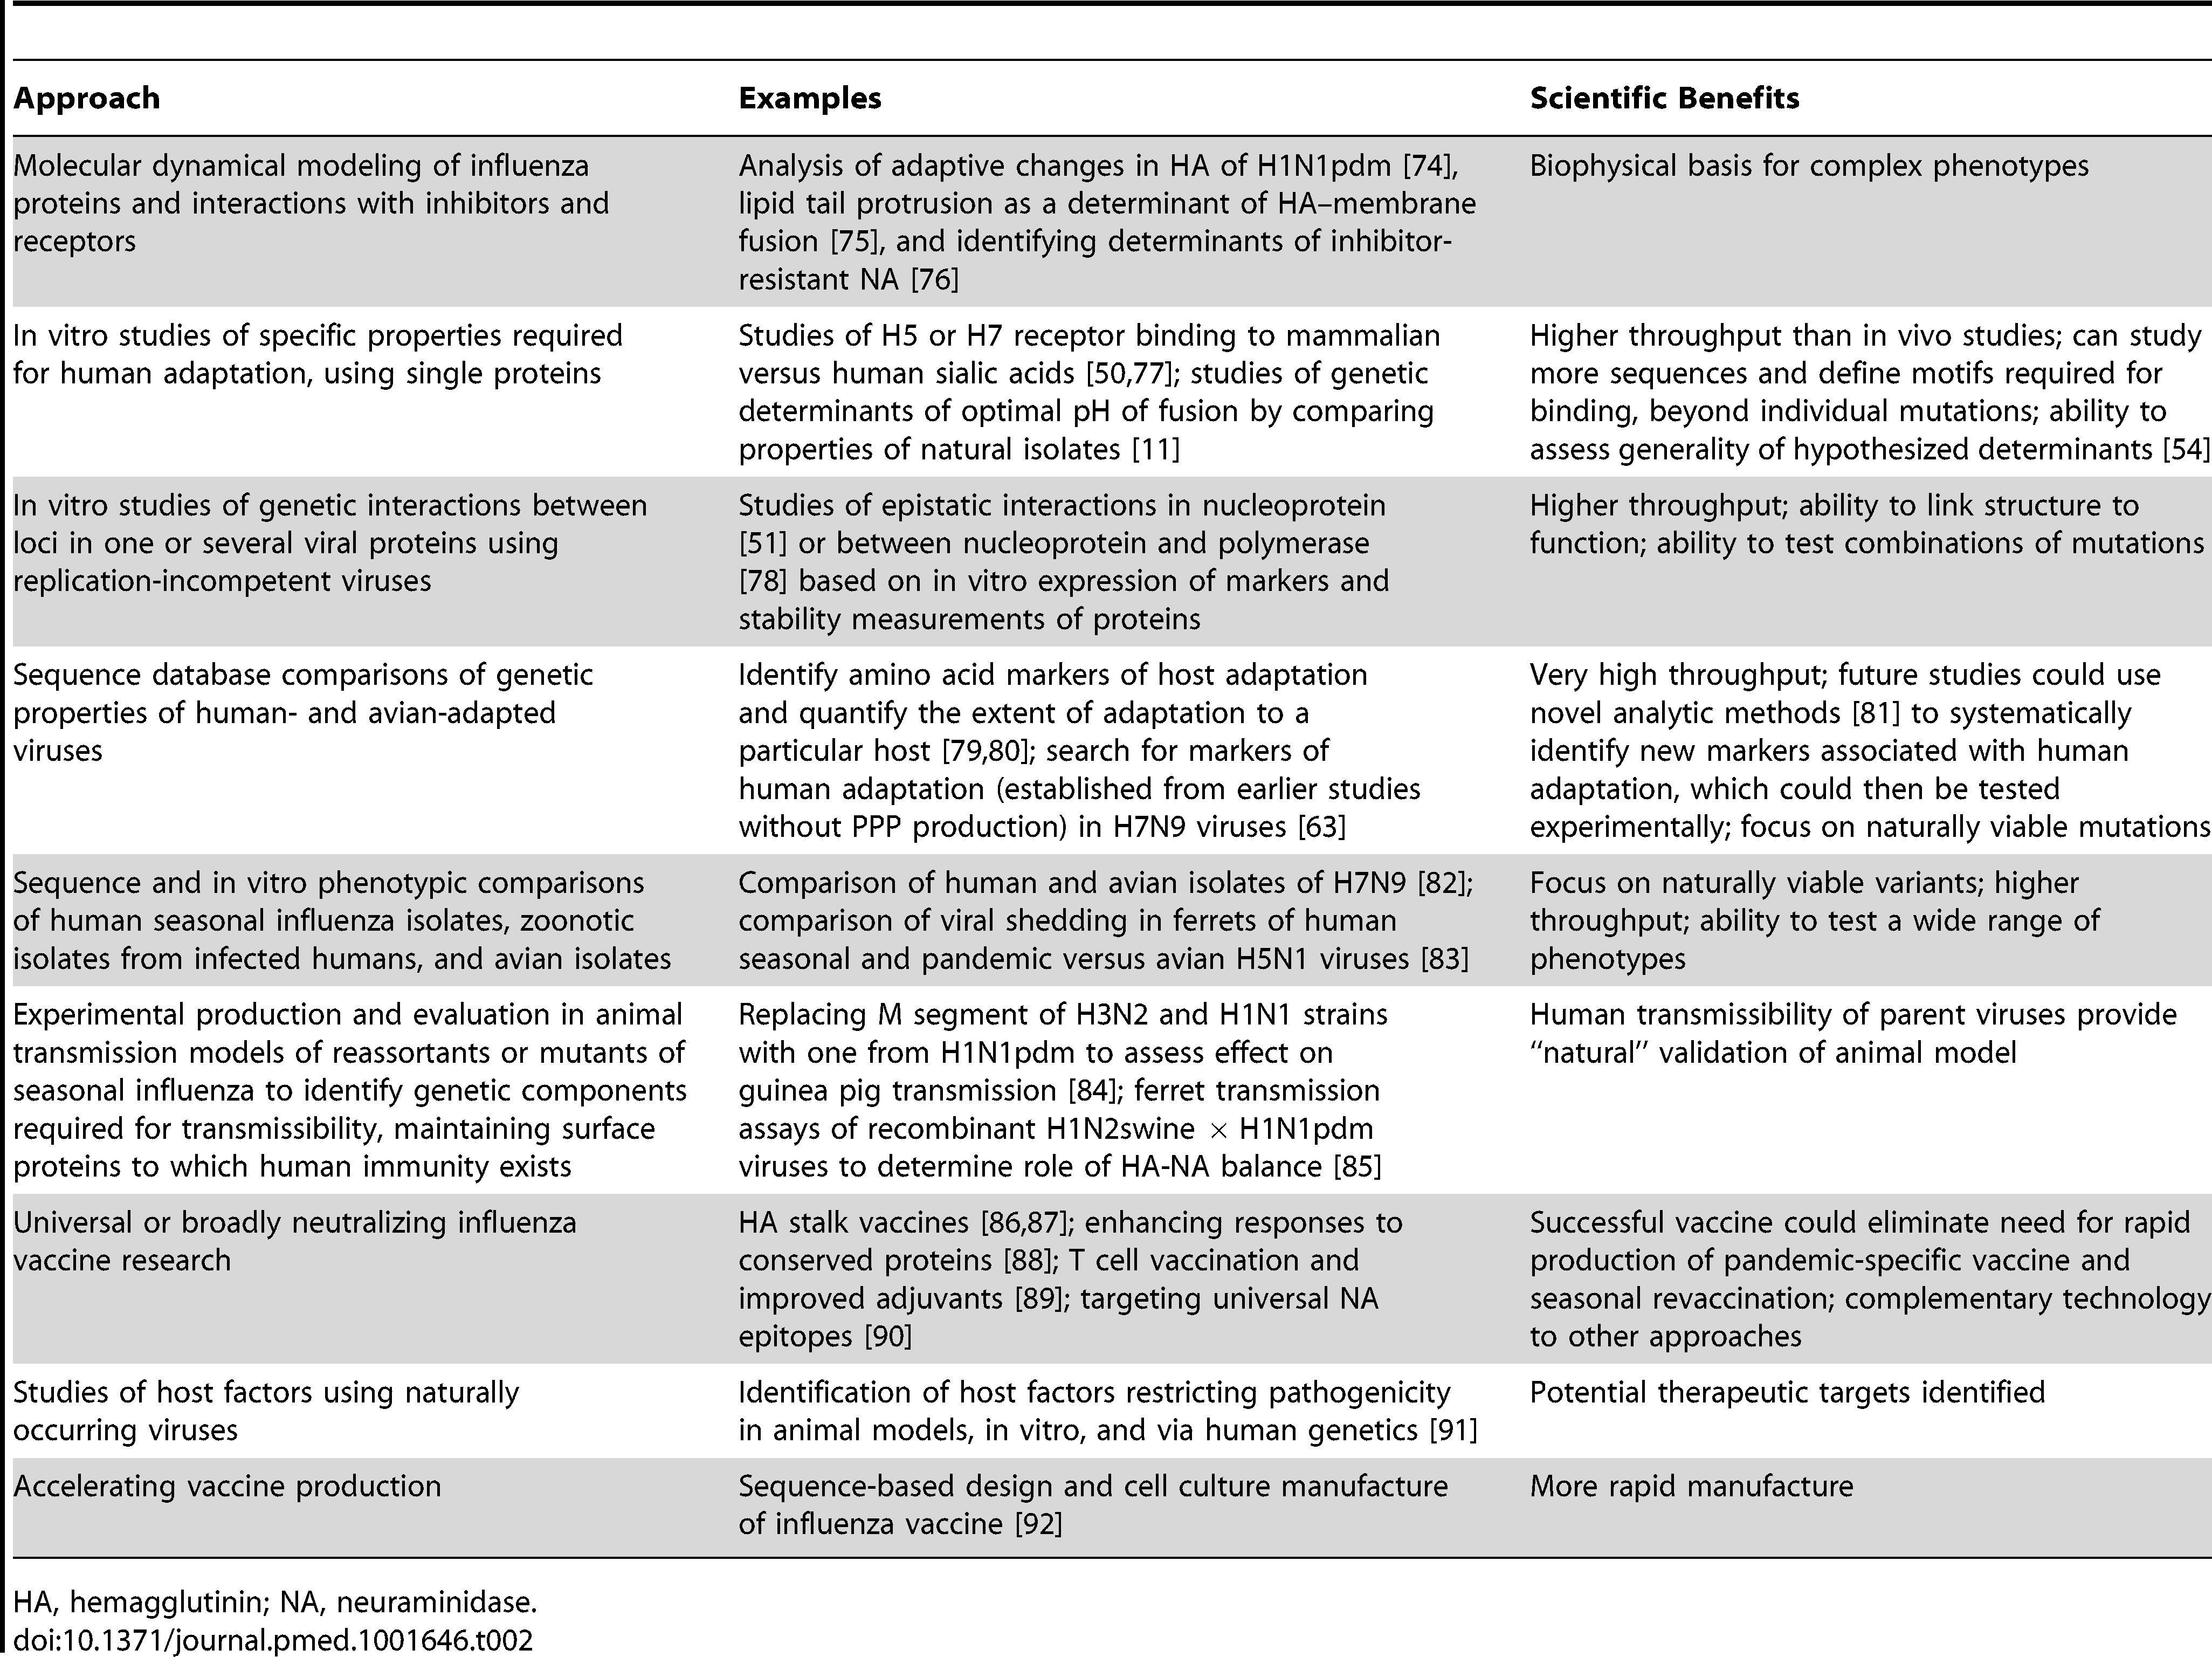 Safer approaches to studying human adaptation of influenza A viruses, and more generally to improving vaccines and therapeutics.